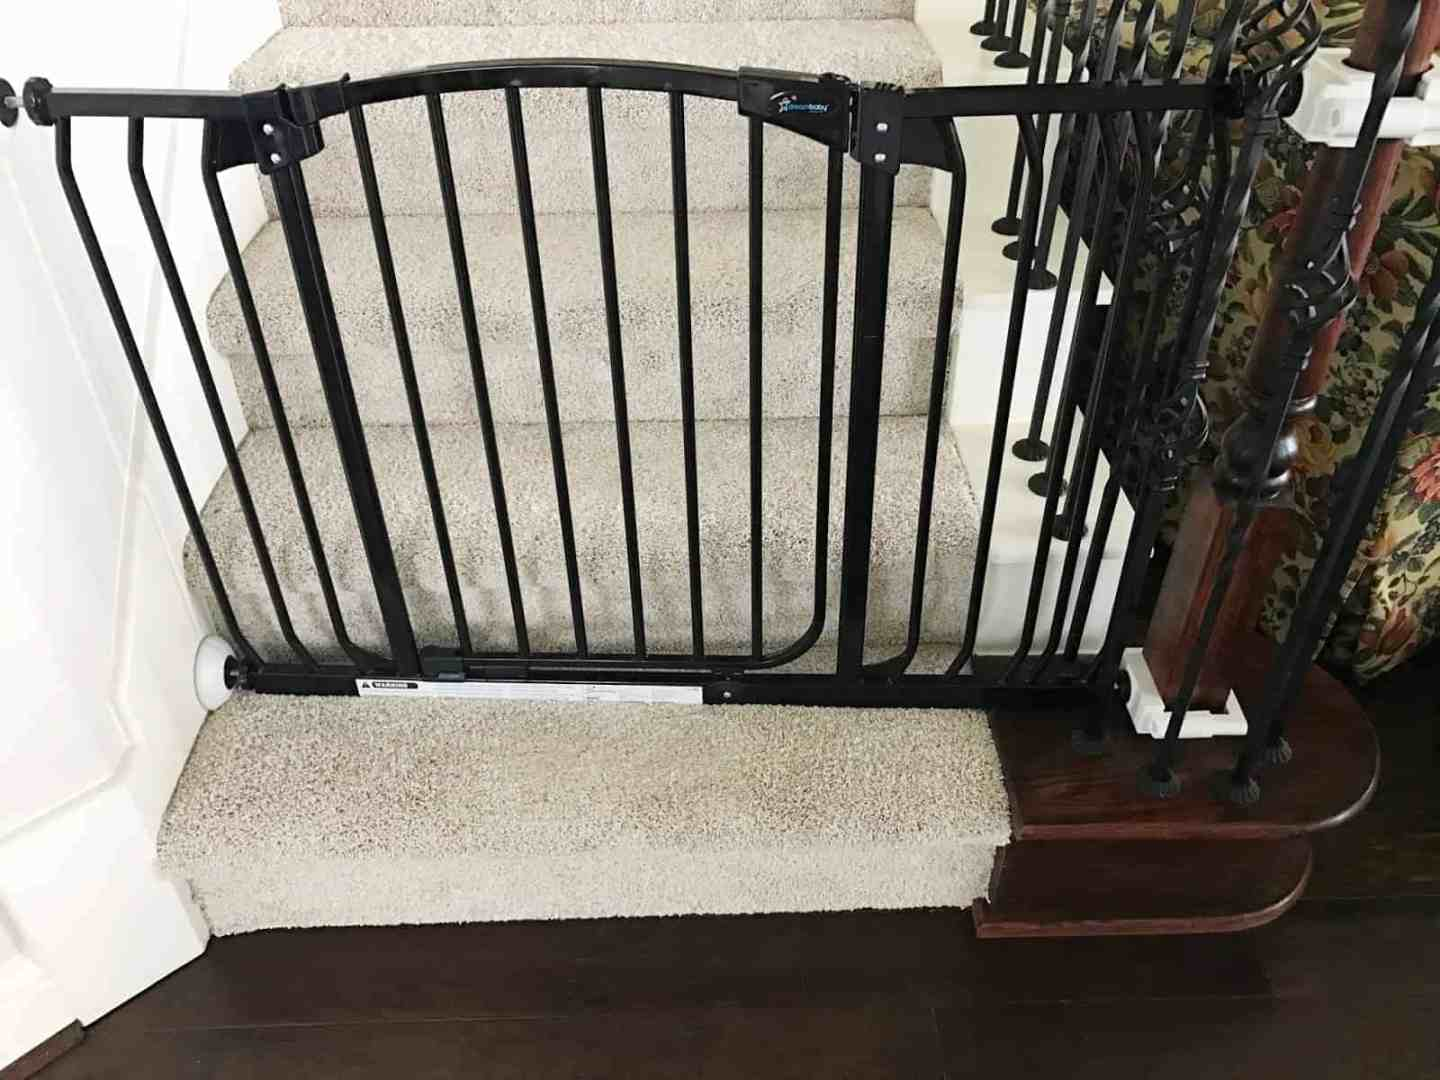 Baby Gates for Difficult Stairs